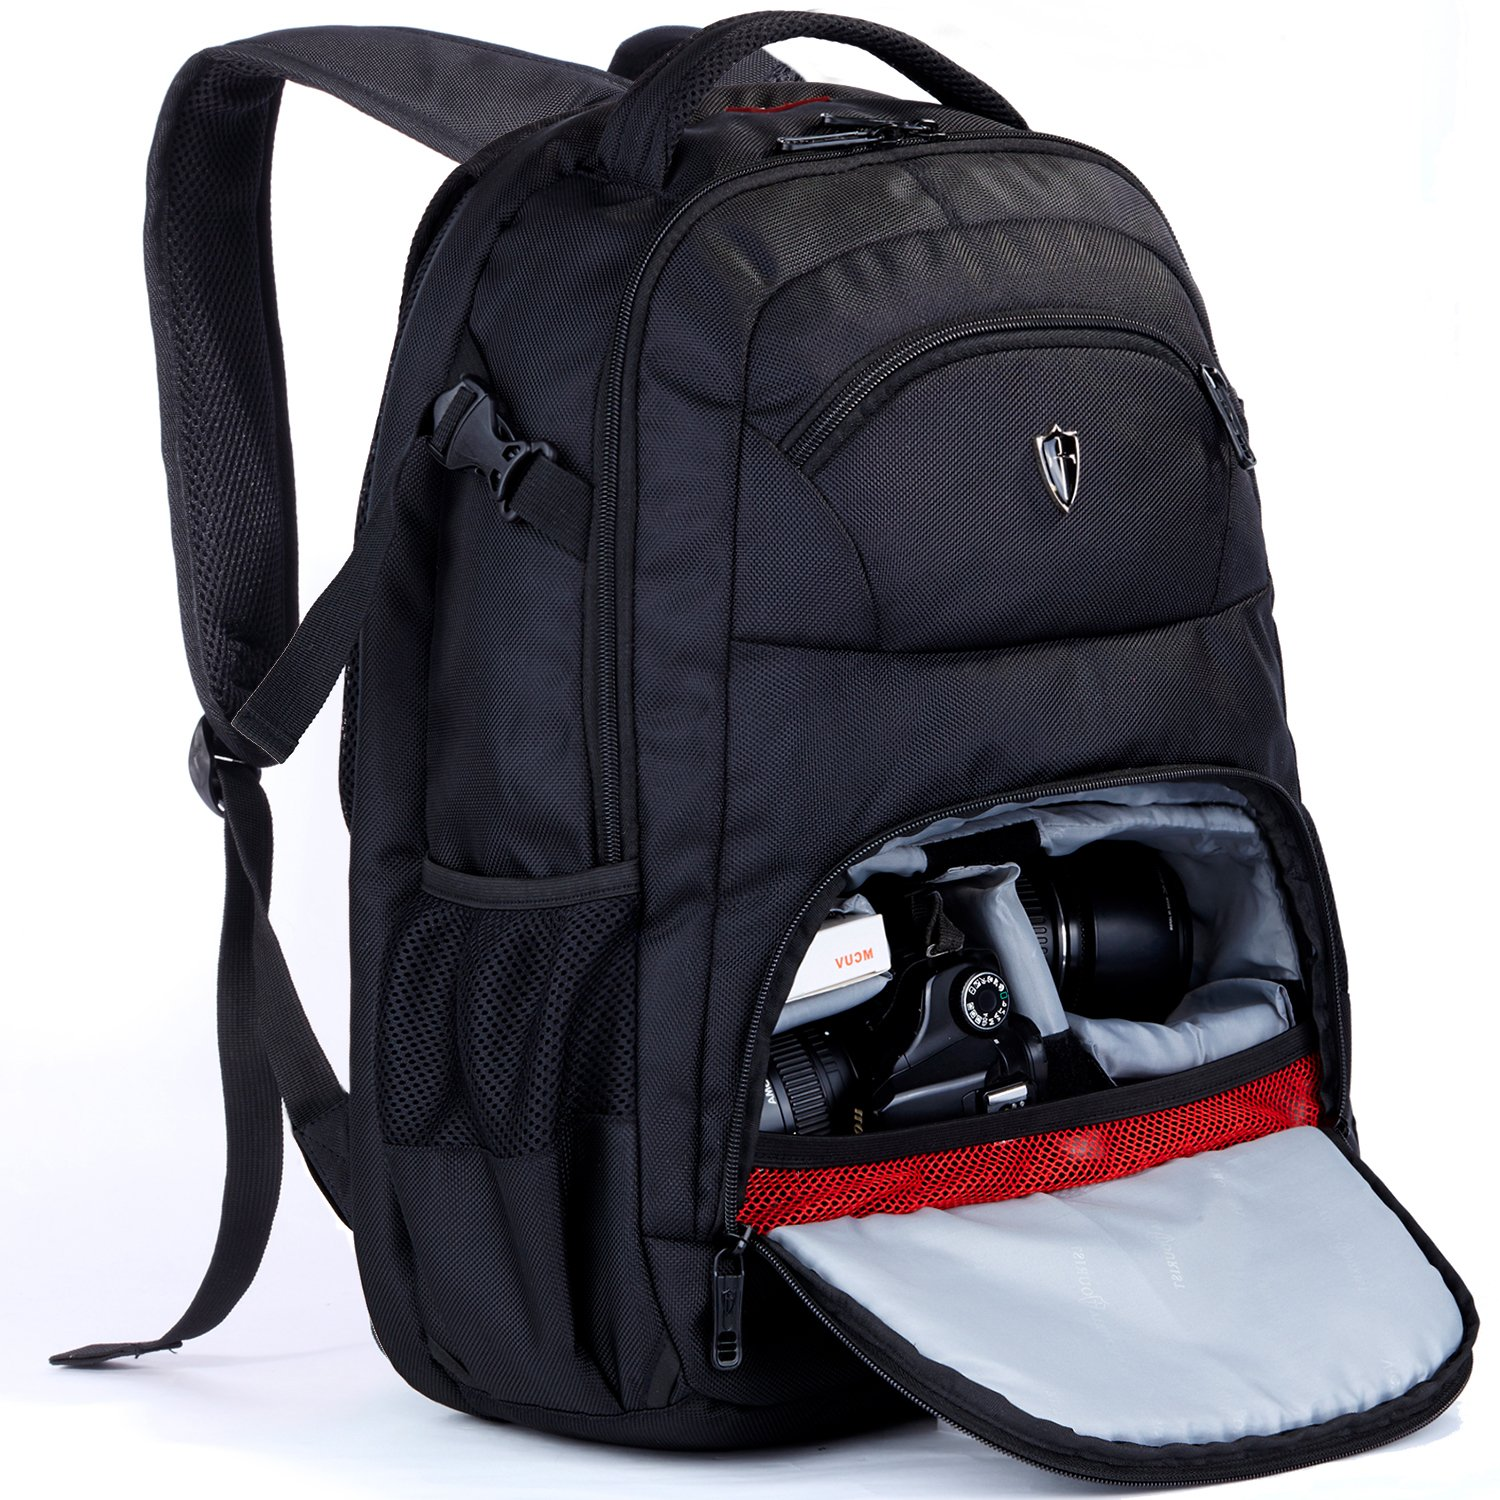 Victoriatourist DSLR Camera Bag Backpack with Laptop Compartment and Raincover Fits 15.6 inch Laptops, Black (Black6022)